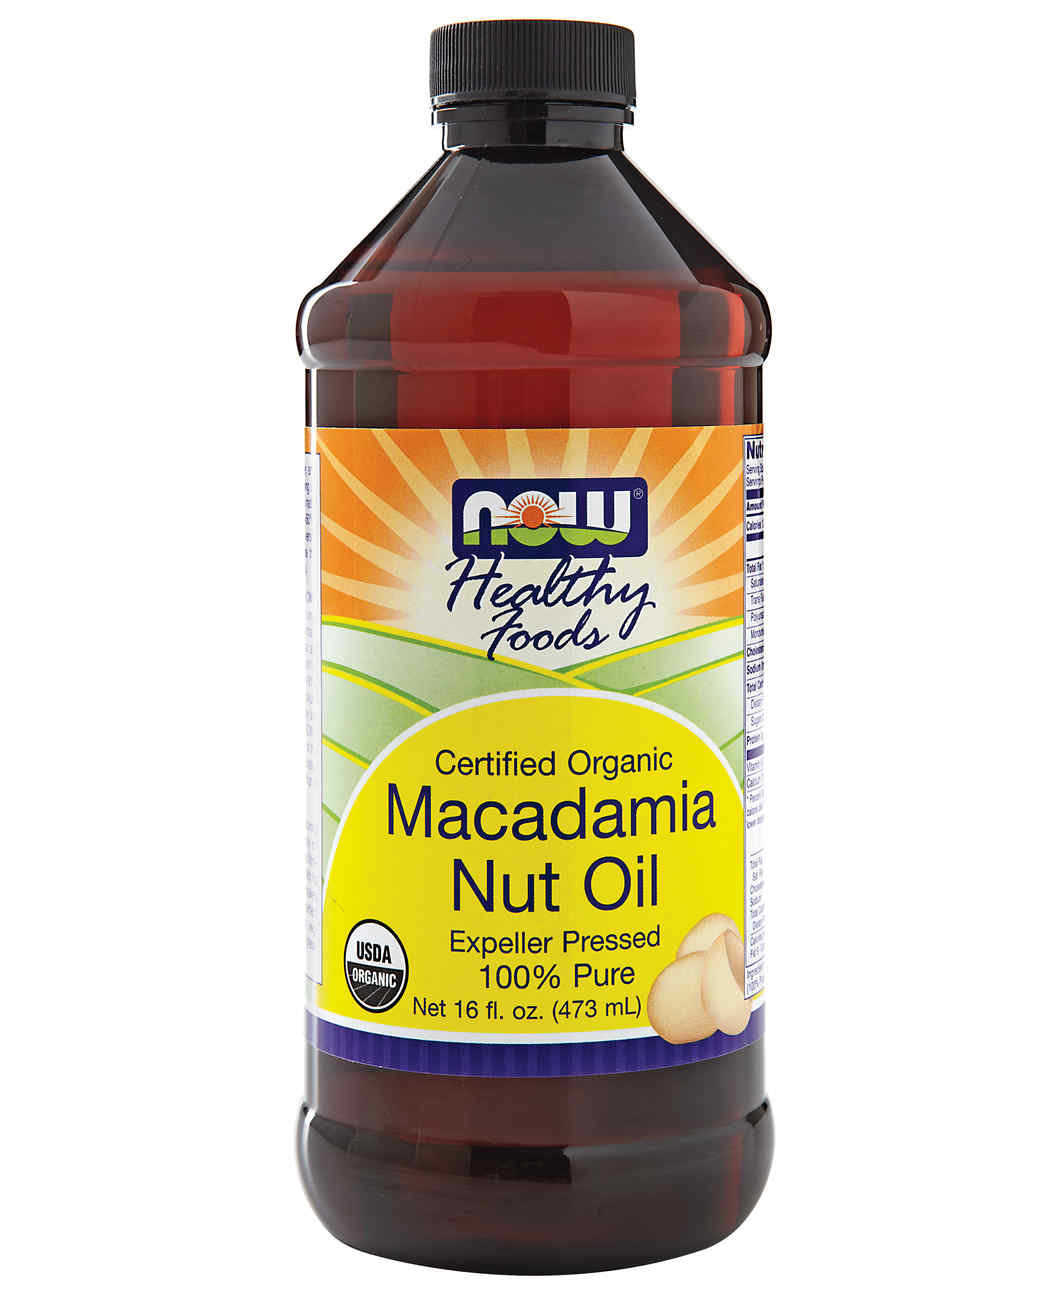 msl-healthy-living-oils-now-healthy-macadamia-md110058.jpg